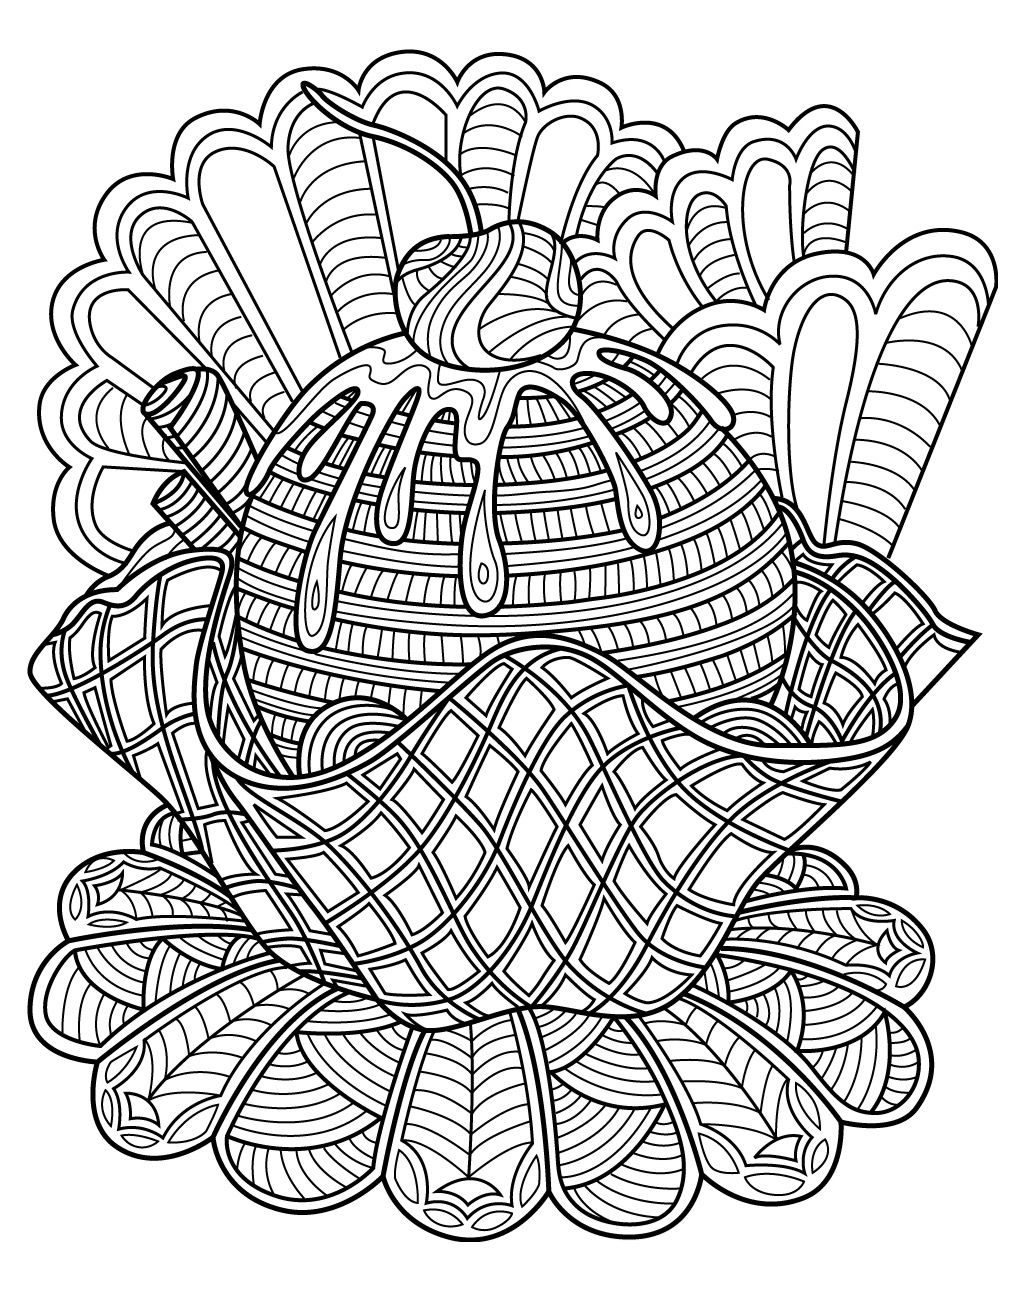 Sweets Coloring Page Colorish Free Coloring App For Adults By Goodsofttech Coloring Pages Food Coloring Pages Animal Coloring Pages